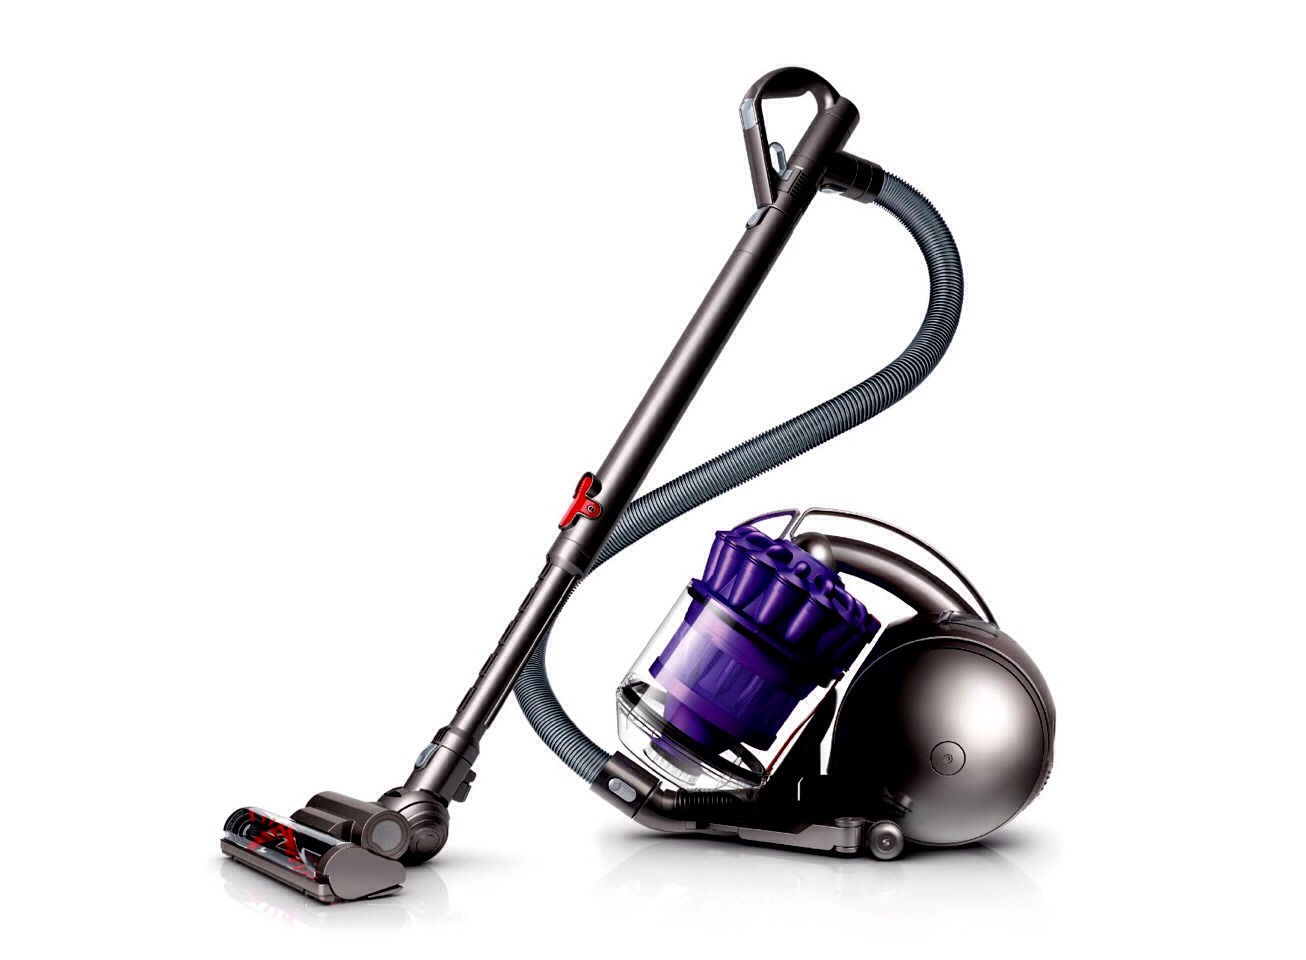 Forget your broom. Most vacuums these days have a bare floor setting. Why would you want to push around the dirt and mess when you could just suck it up in the vacuum.